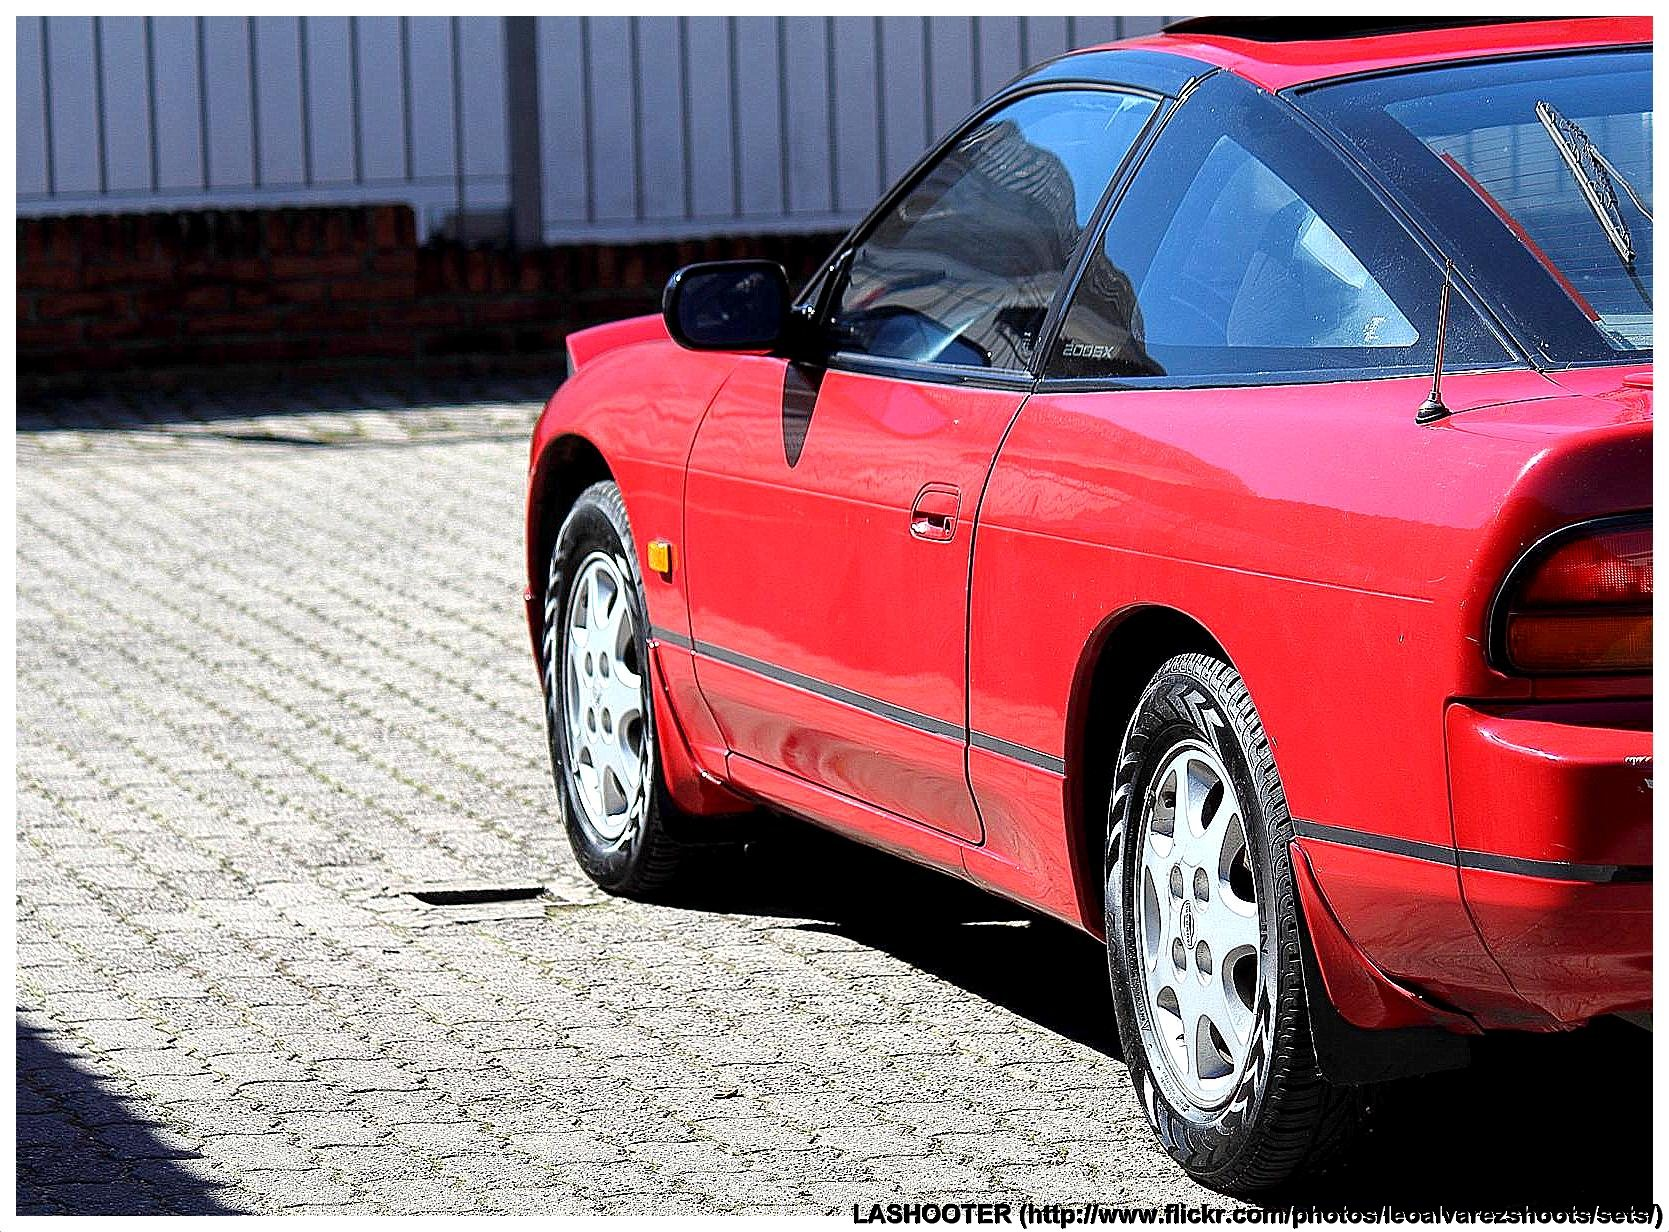 Nissan 200 SX - 16V Turbo | Flickr - Photo Sharing!